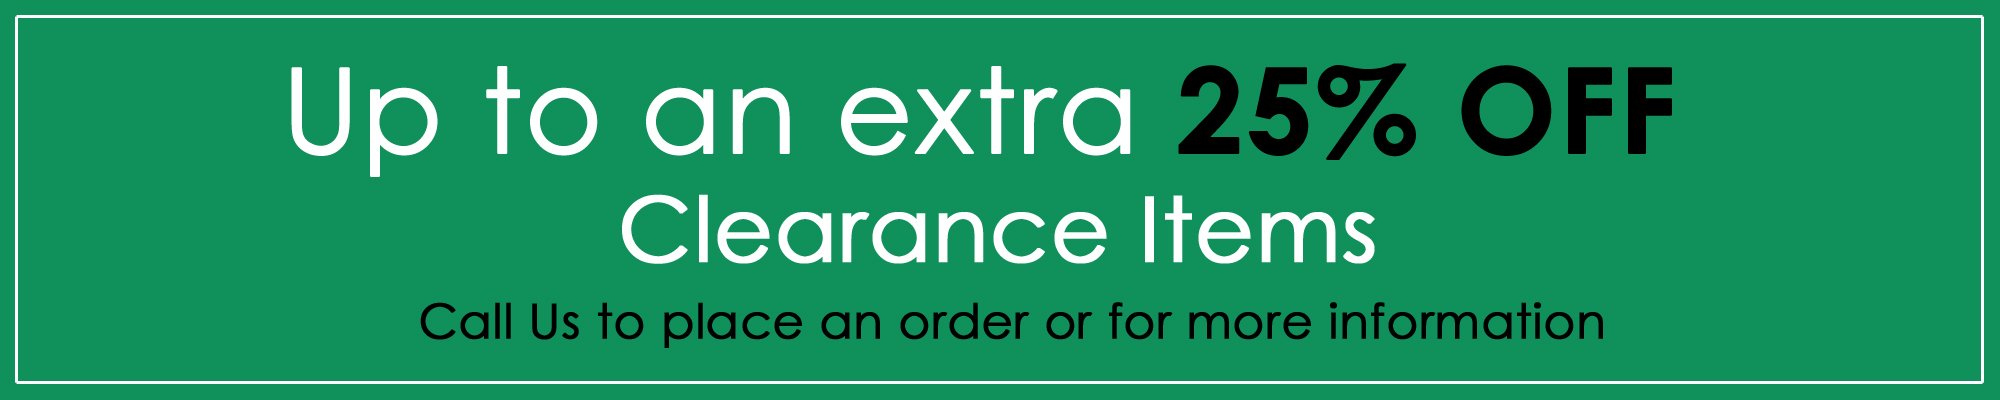 Clearance Offer